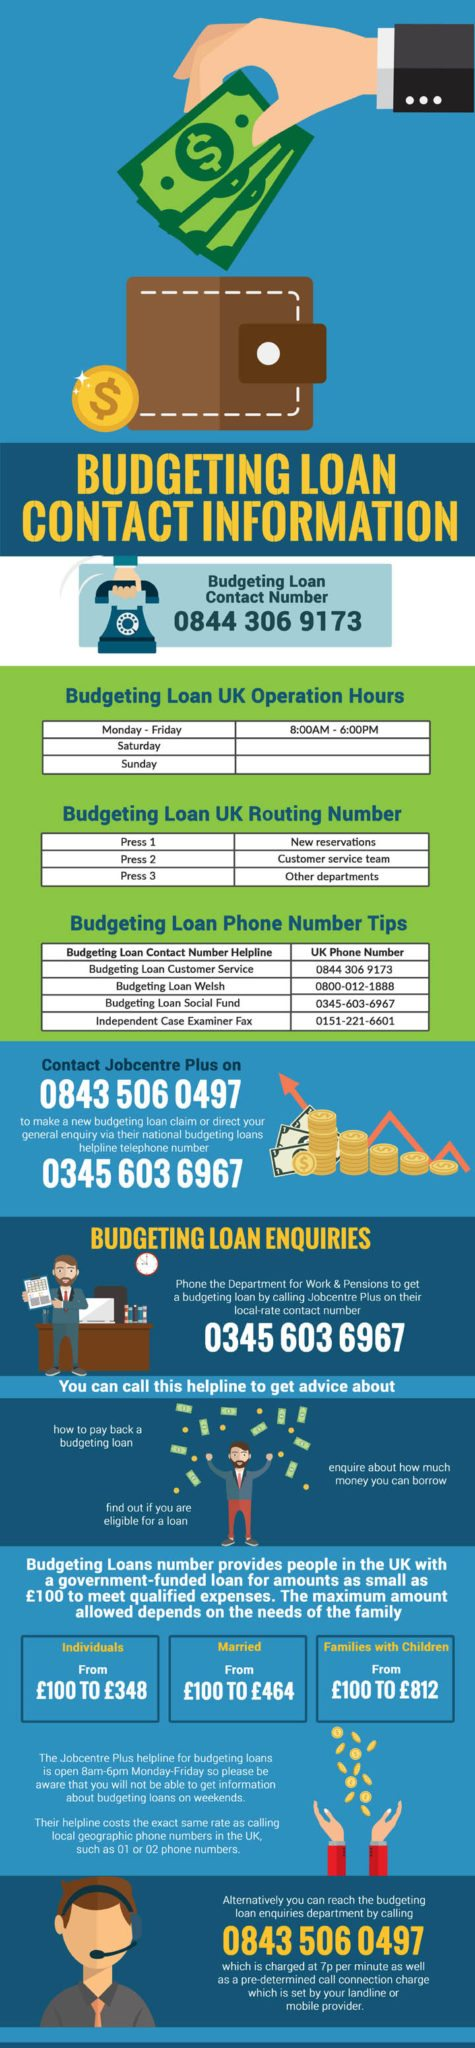 Budgeting Loan Helpline